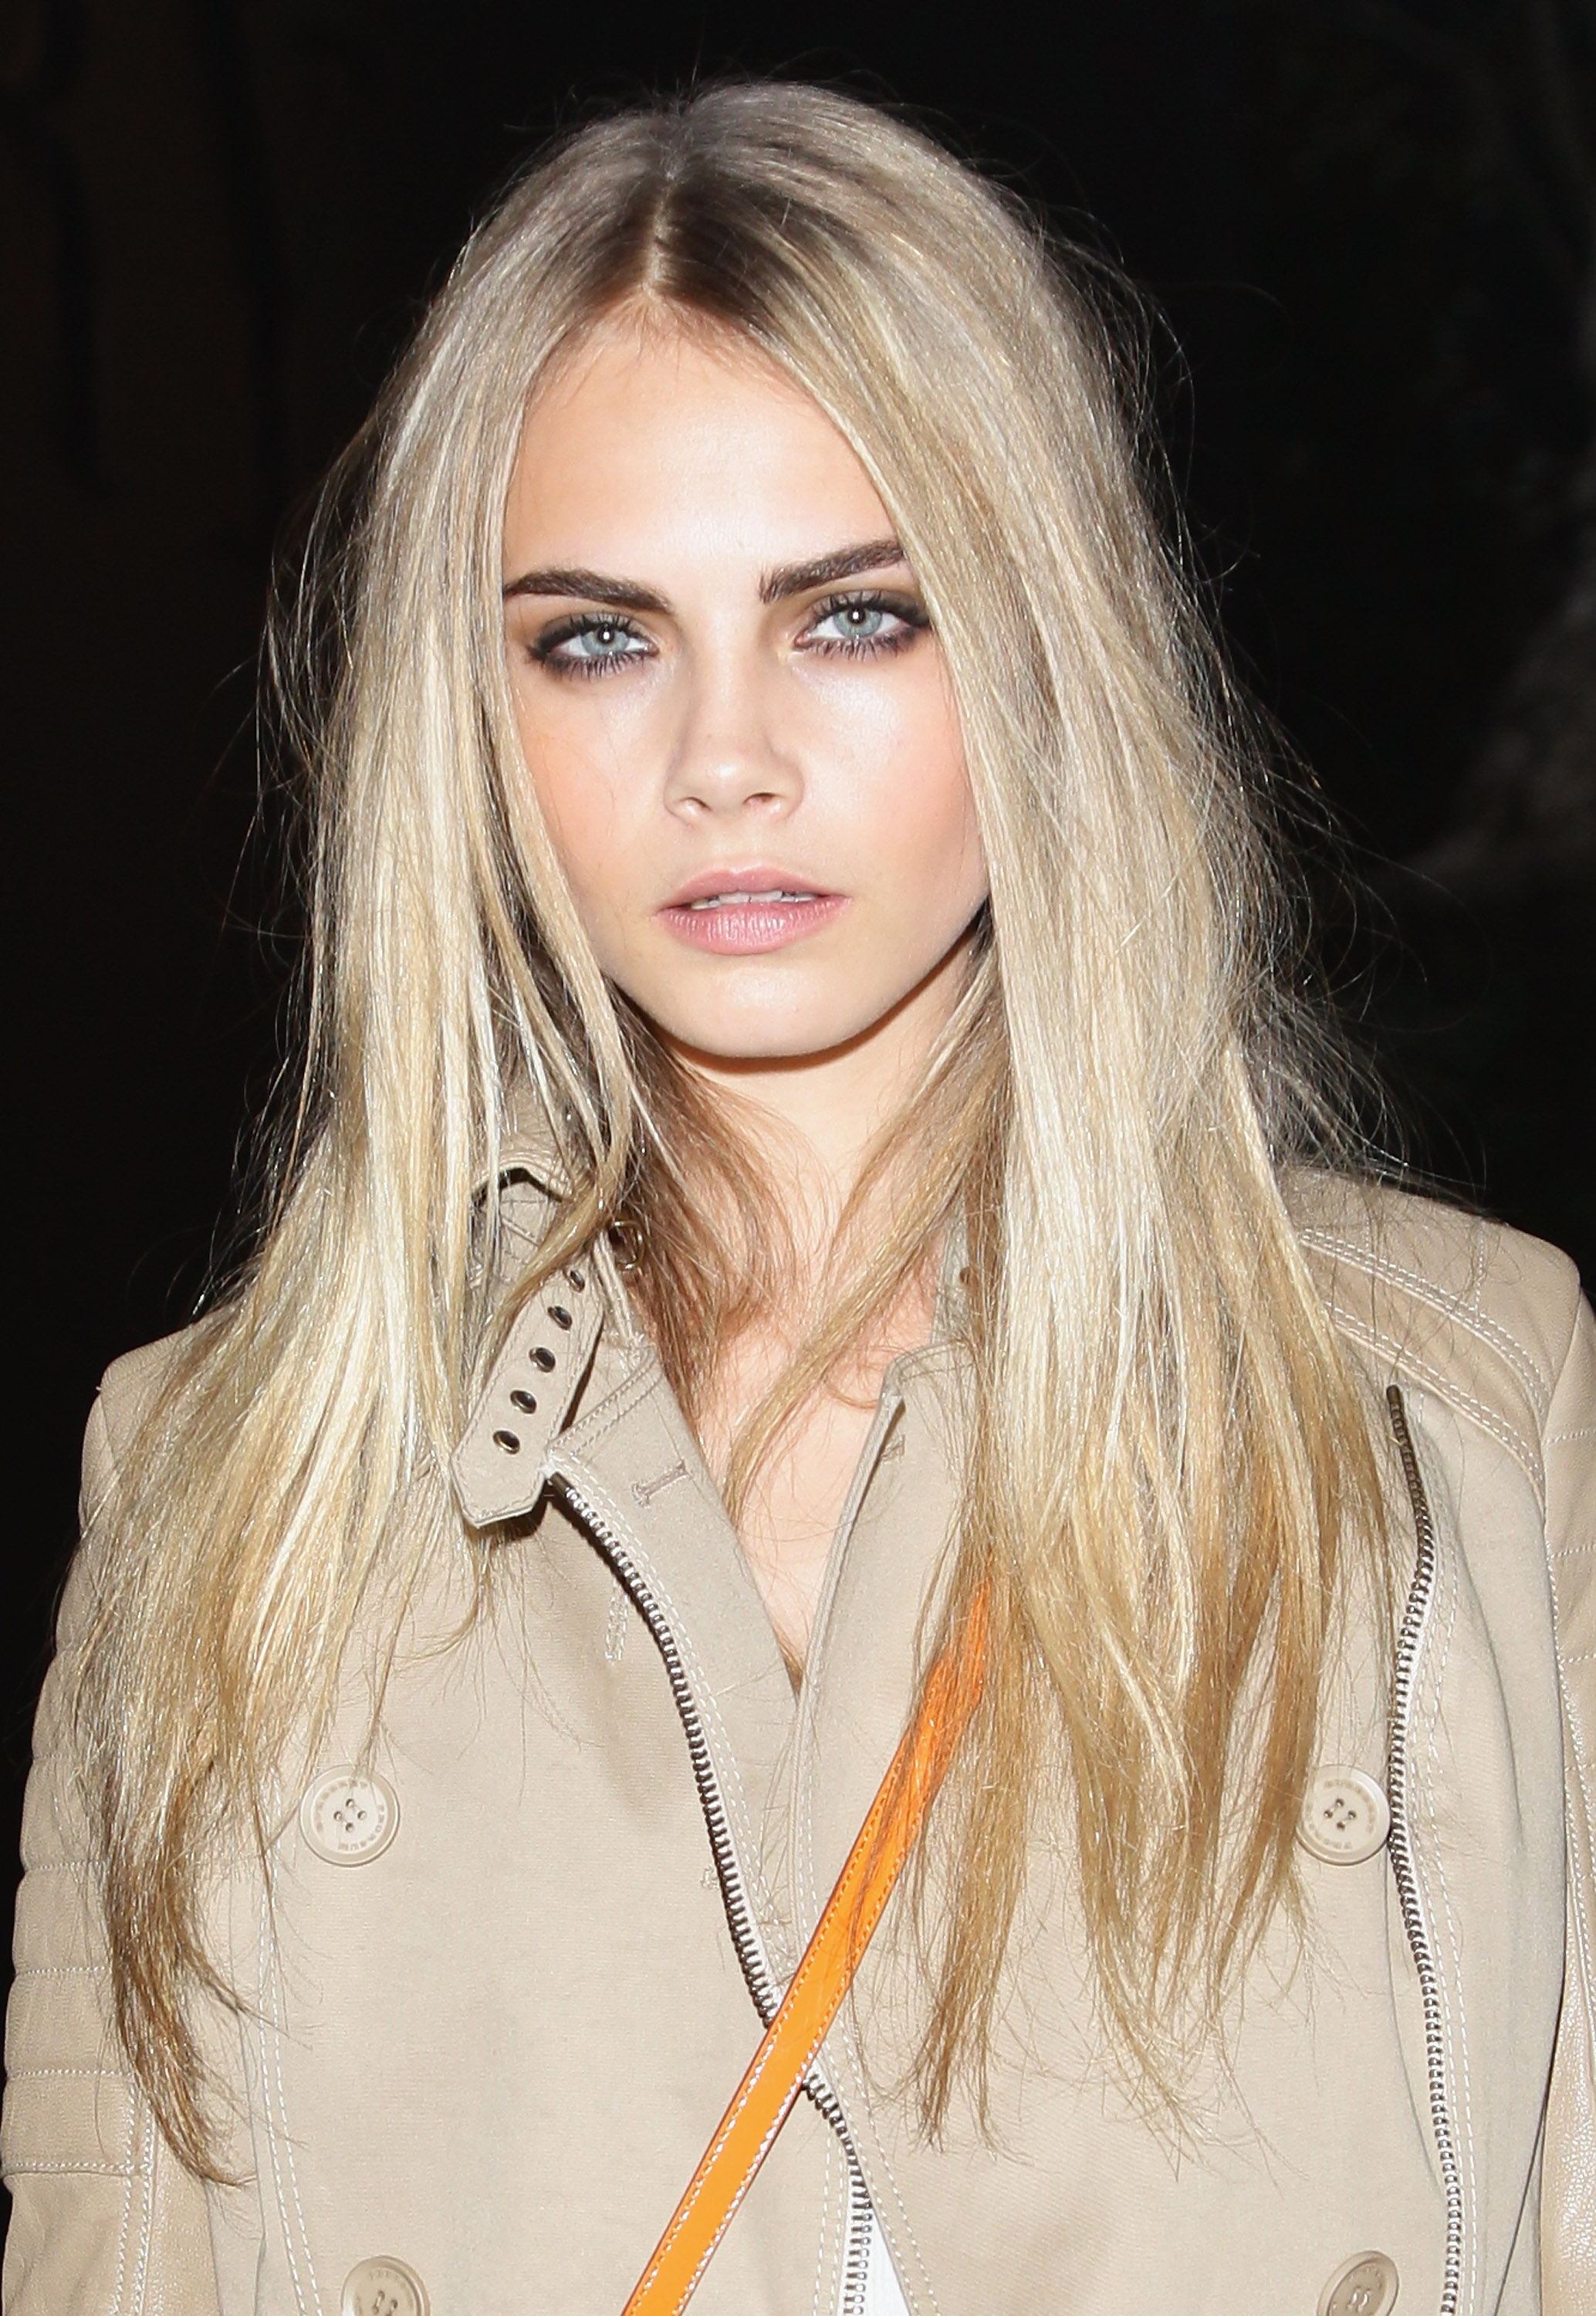 Getty Images: Cara Delevigne